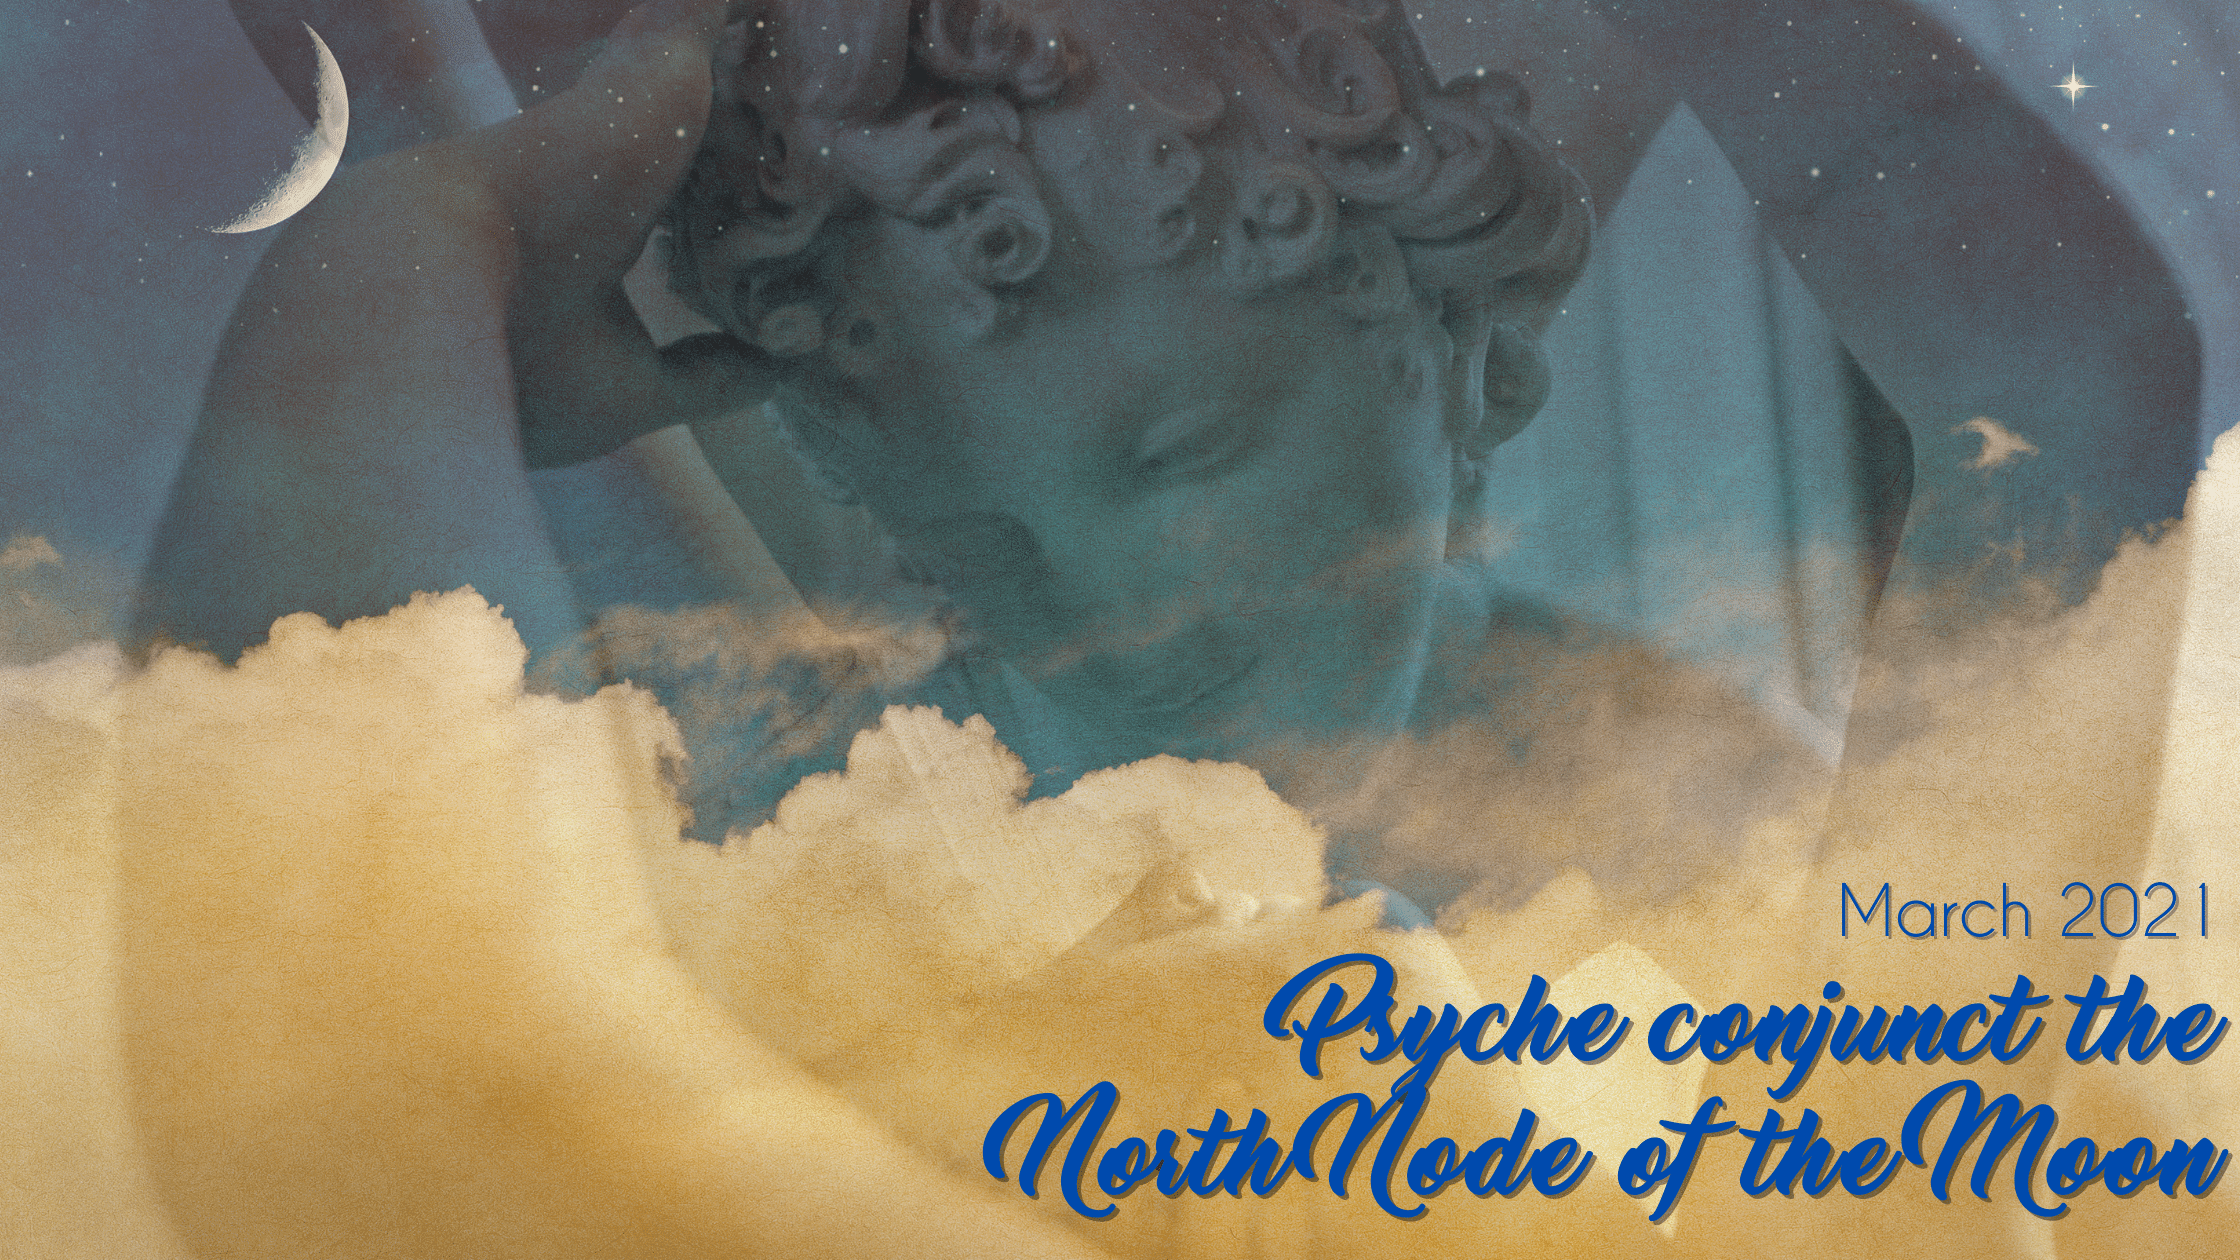 Psyche conjunct the North Node of the Moon – March 2021